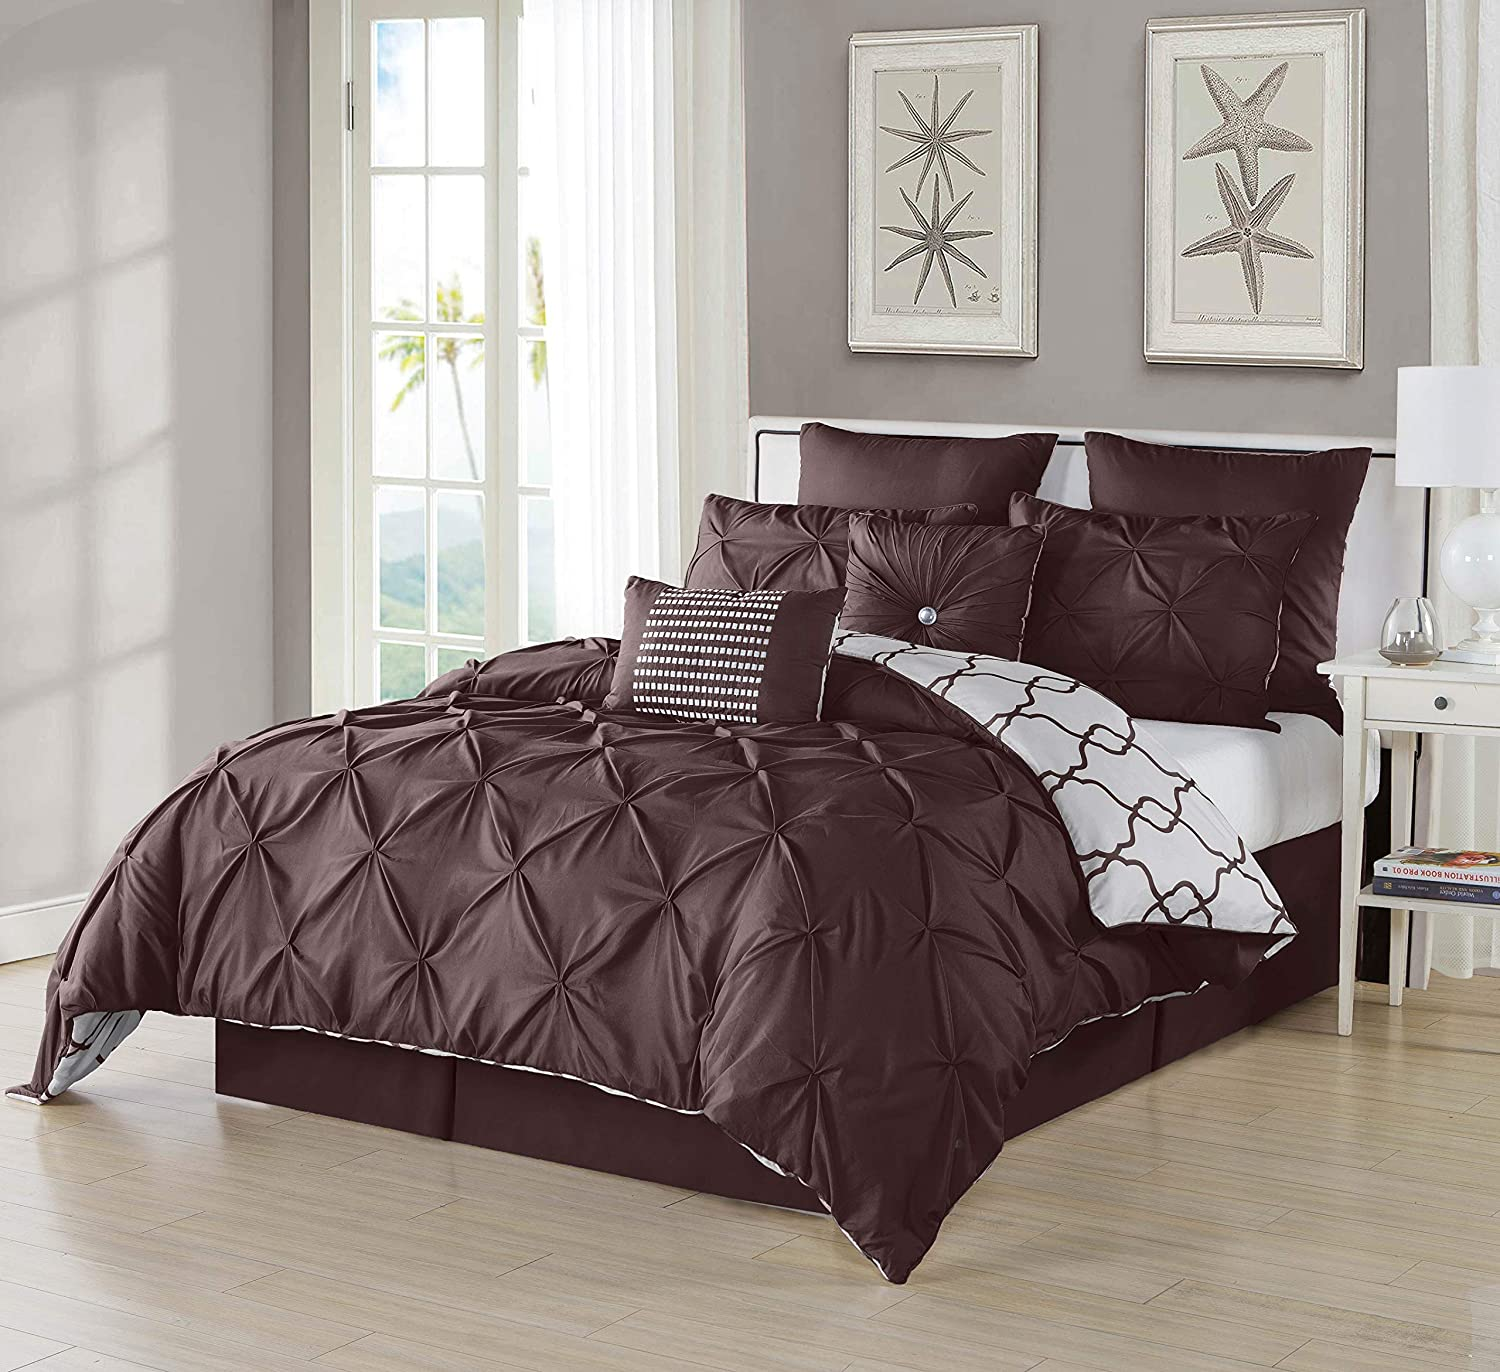 Geometric Pintuck Collection | | Brown Duck River Textile Esy Hotel Quality Luxury Comforter Duvet Insert Cover Hypoallergenic 8 Piece Set Queen Size